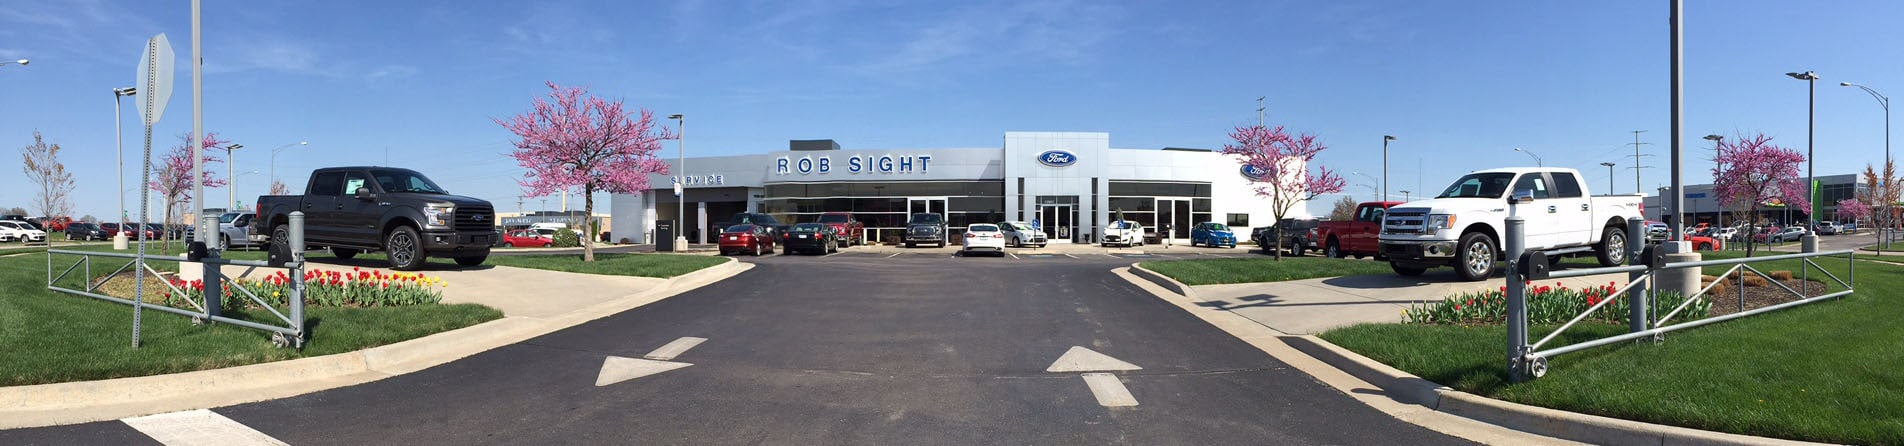 Ford Dealers Kansas City >> About Rob Sight Ford New Ford And Used Car Dealer Kansas